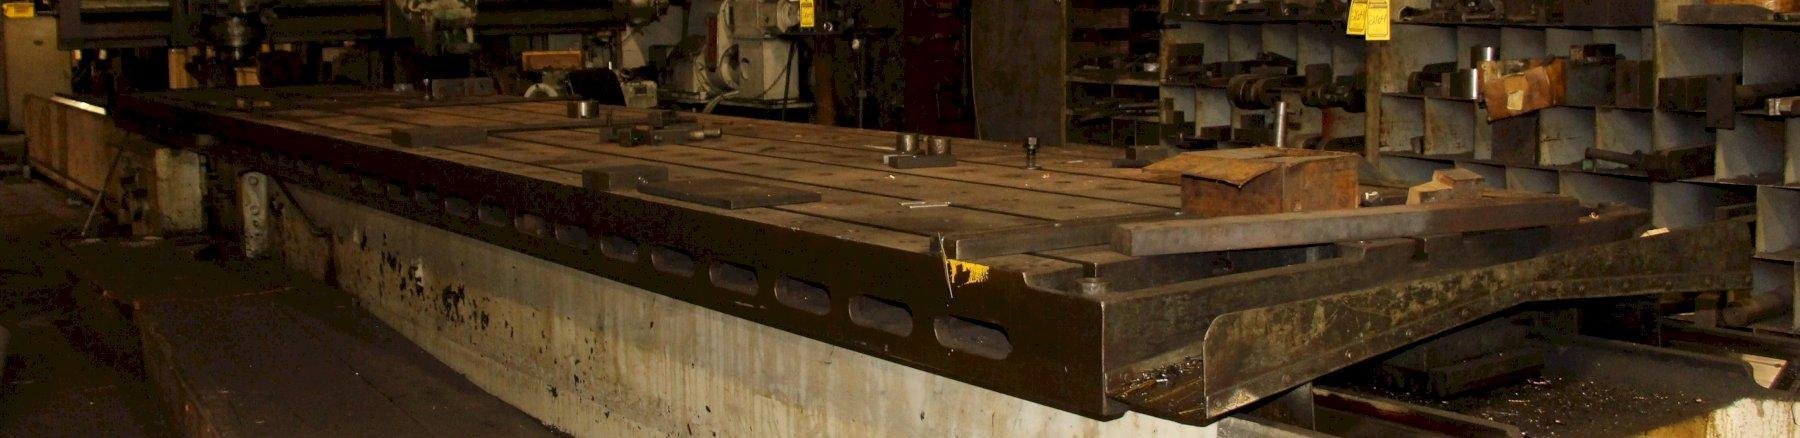 """66"""" X 360"""" T-SLOTTED TABLE: STOCK 11839"""